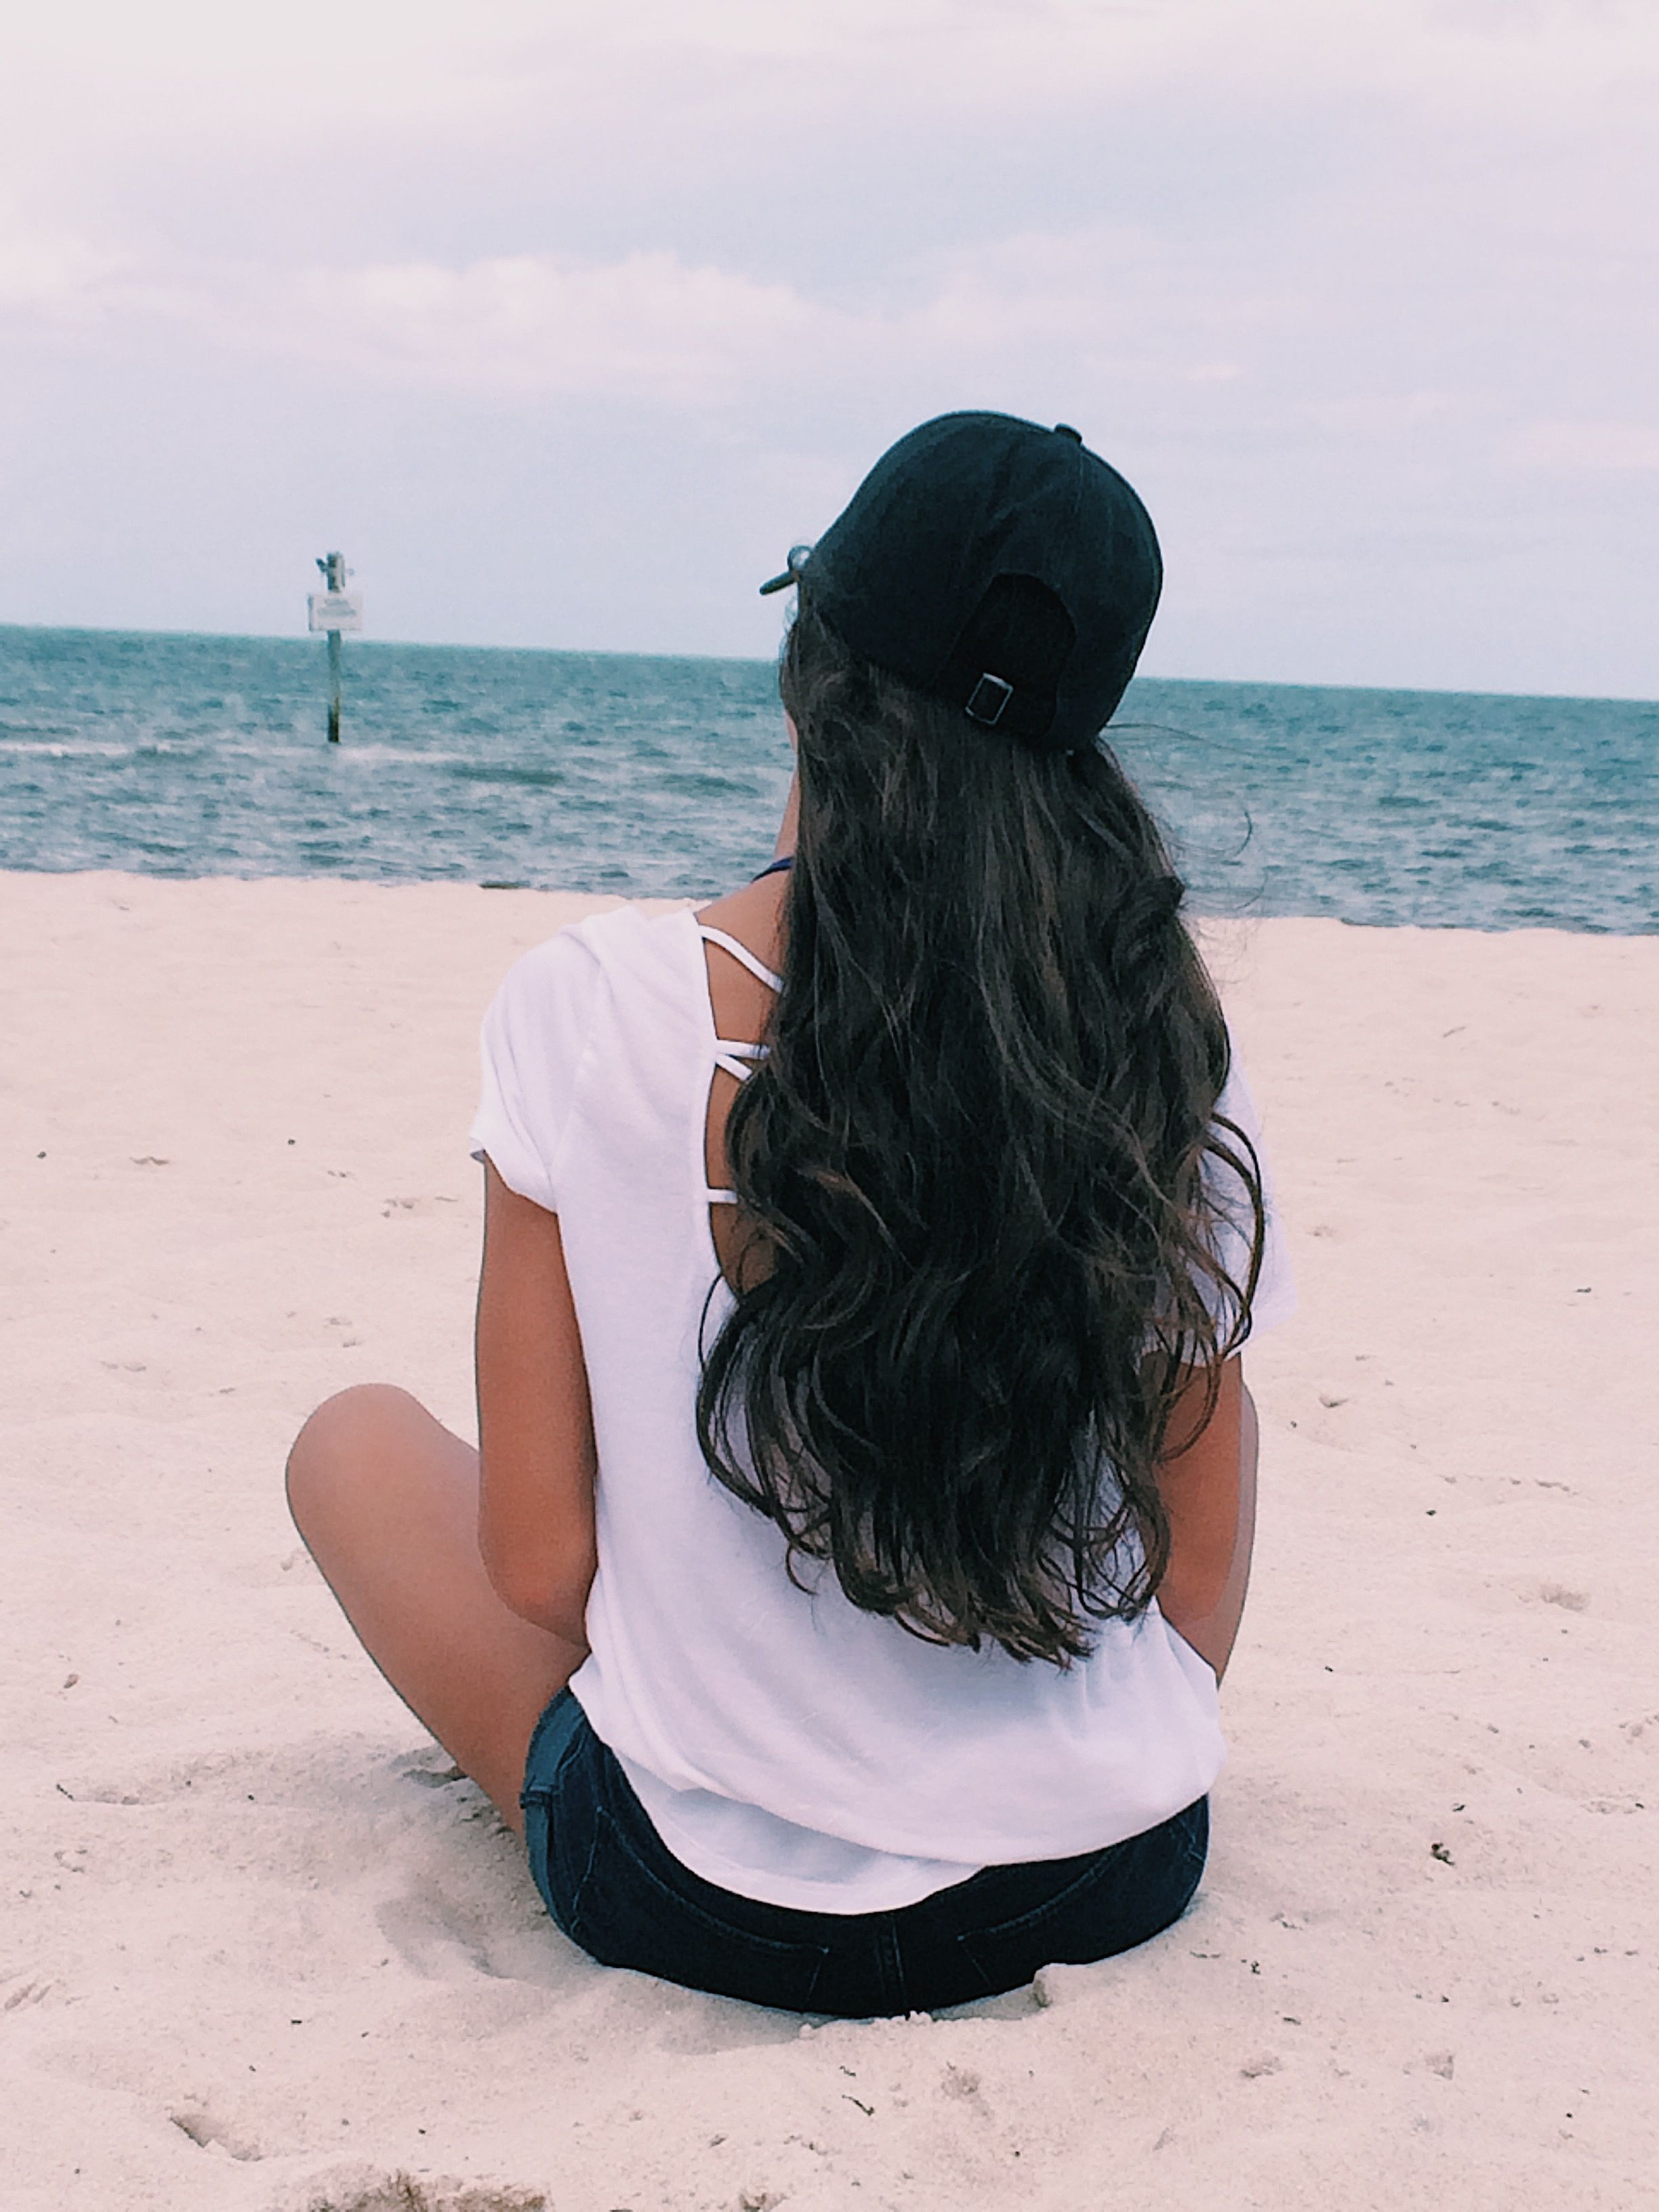 Tumblr And Candid Pictures To Take At The Beach Simply Beautiful Photography E C A Must Tryy